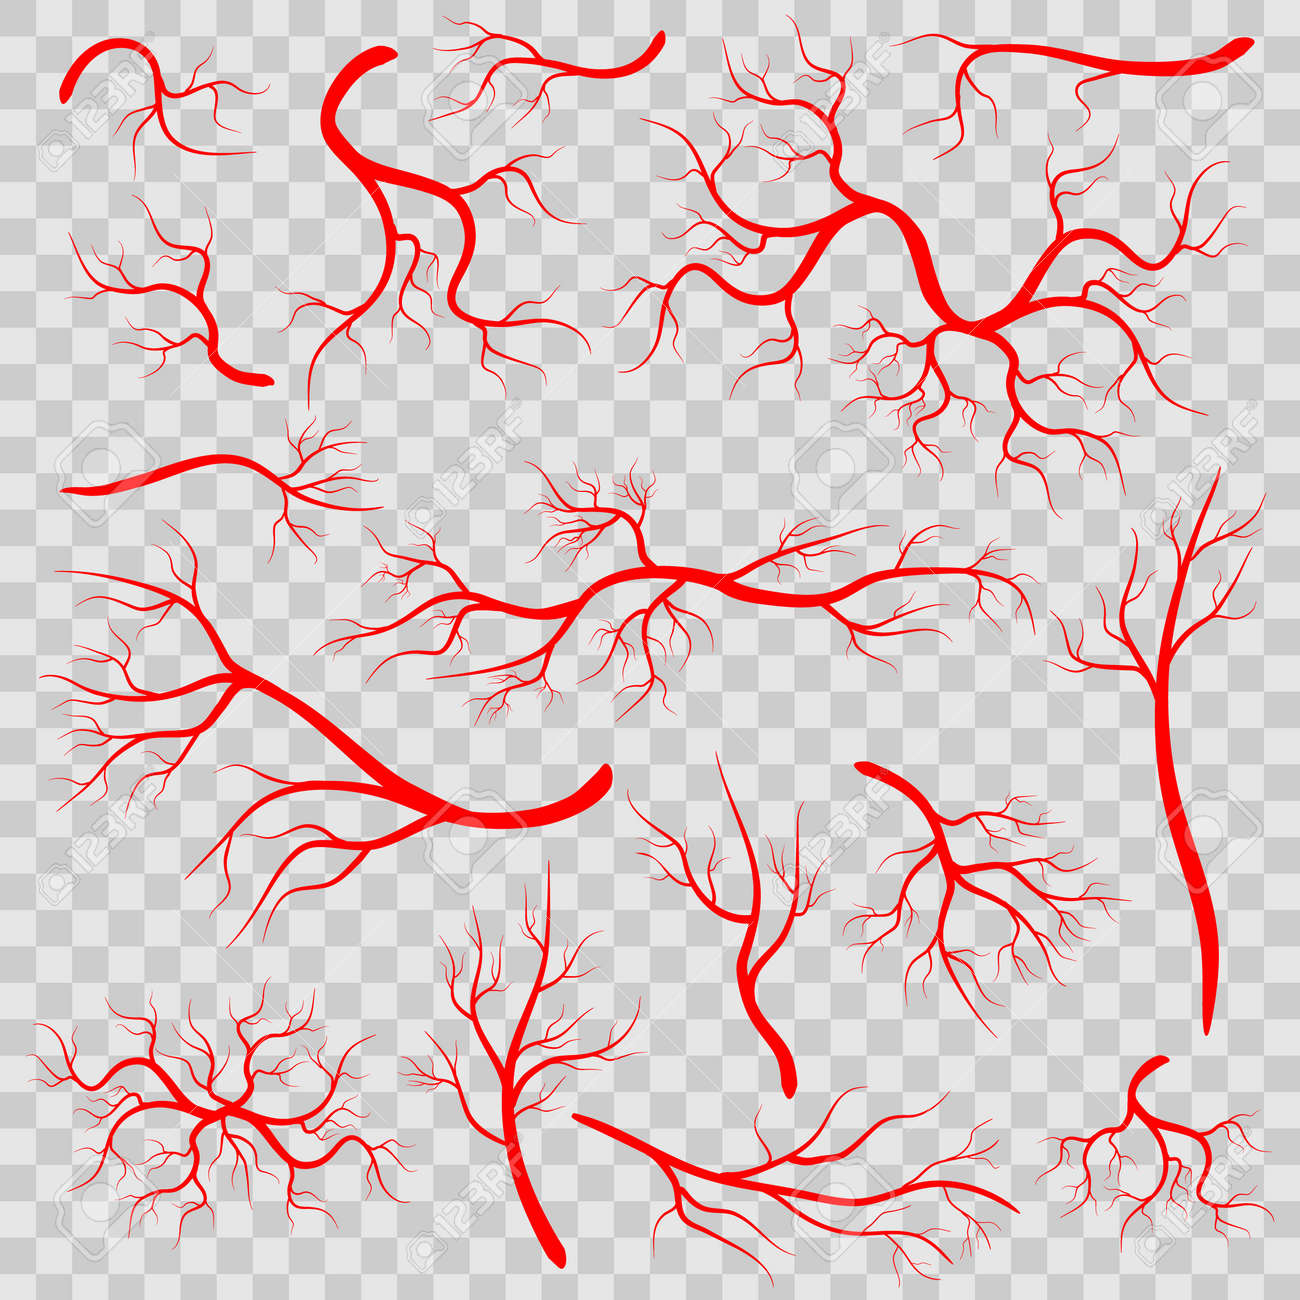 Creative vector illustration of red veins isolated on background. Human vessel, health arteries, Art design. Abstract concept graphic element capillaries. Blood system - 101249224